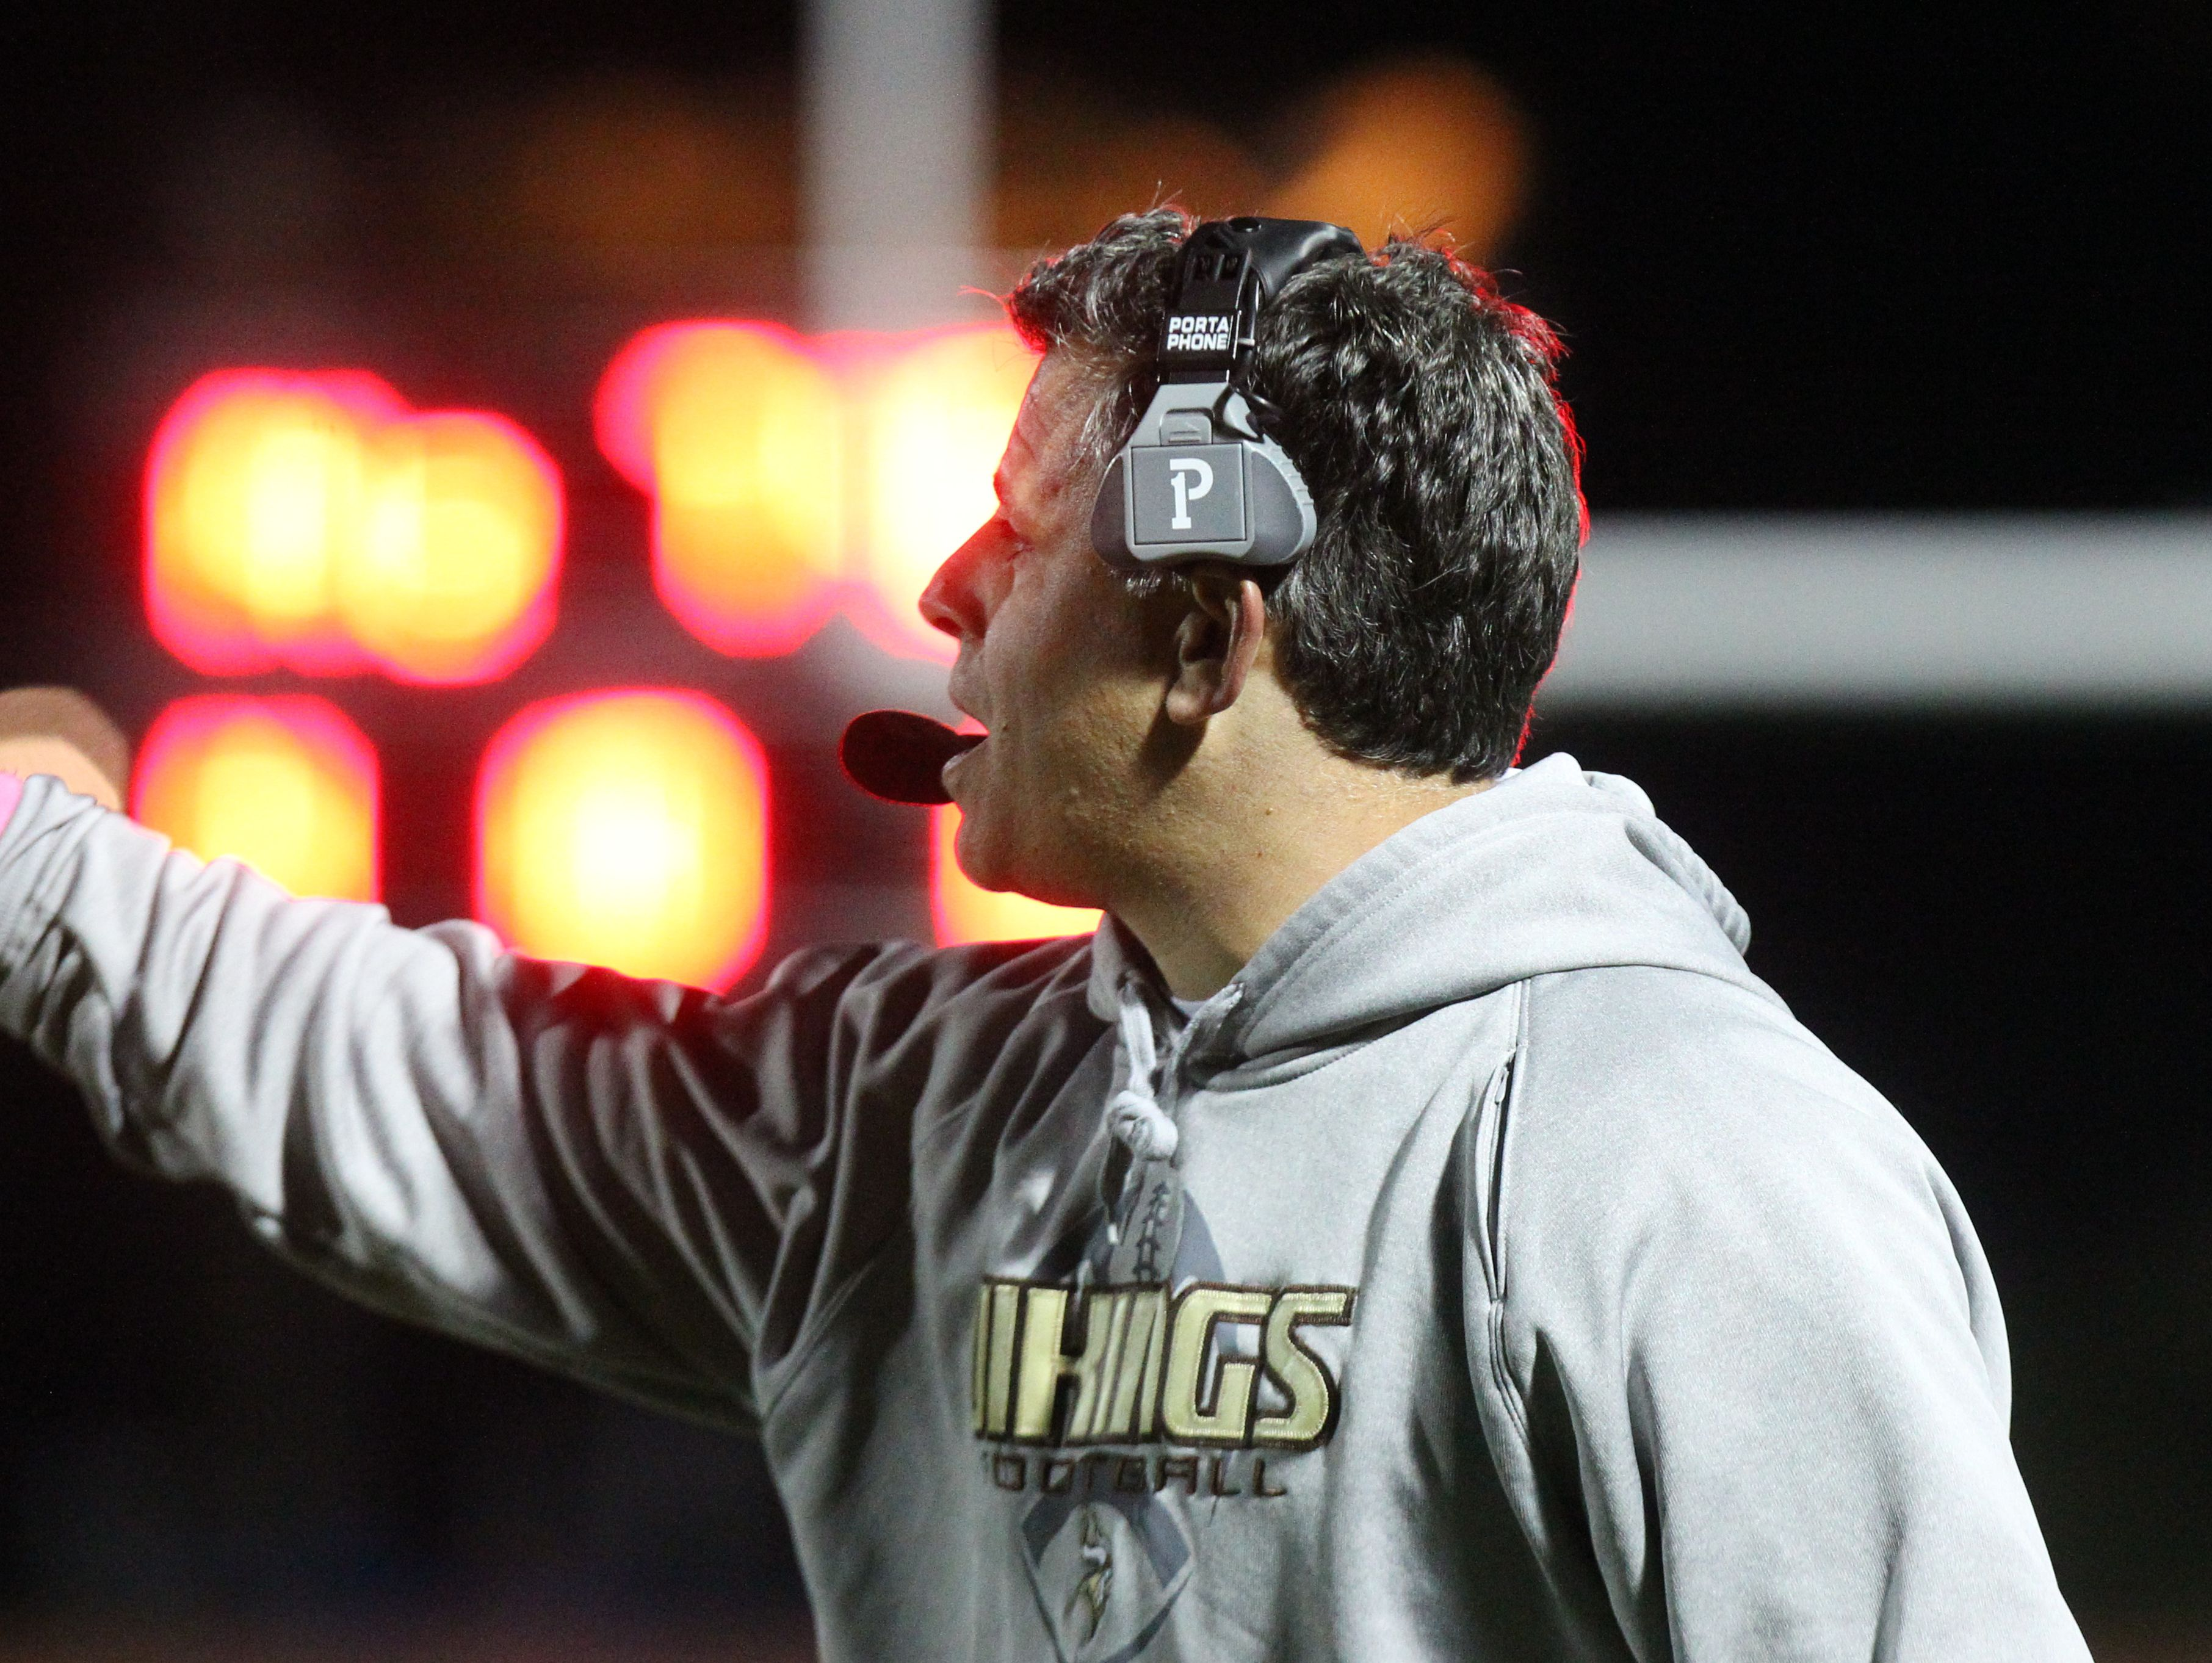 Clarkstown South head coach Mike Scarpelli during a Class AA football playoff game at with Mahopac at Clarkstown South Oct. 14, 2016.